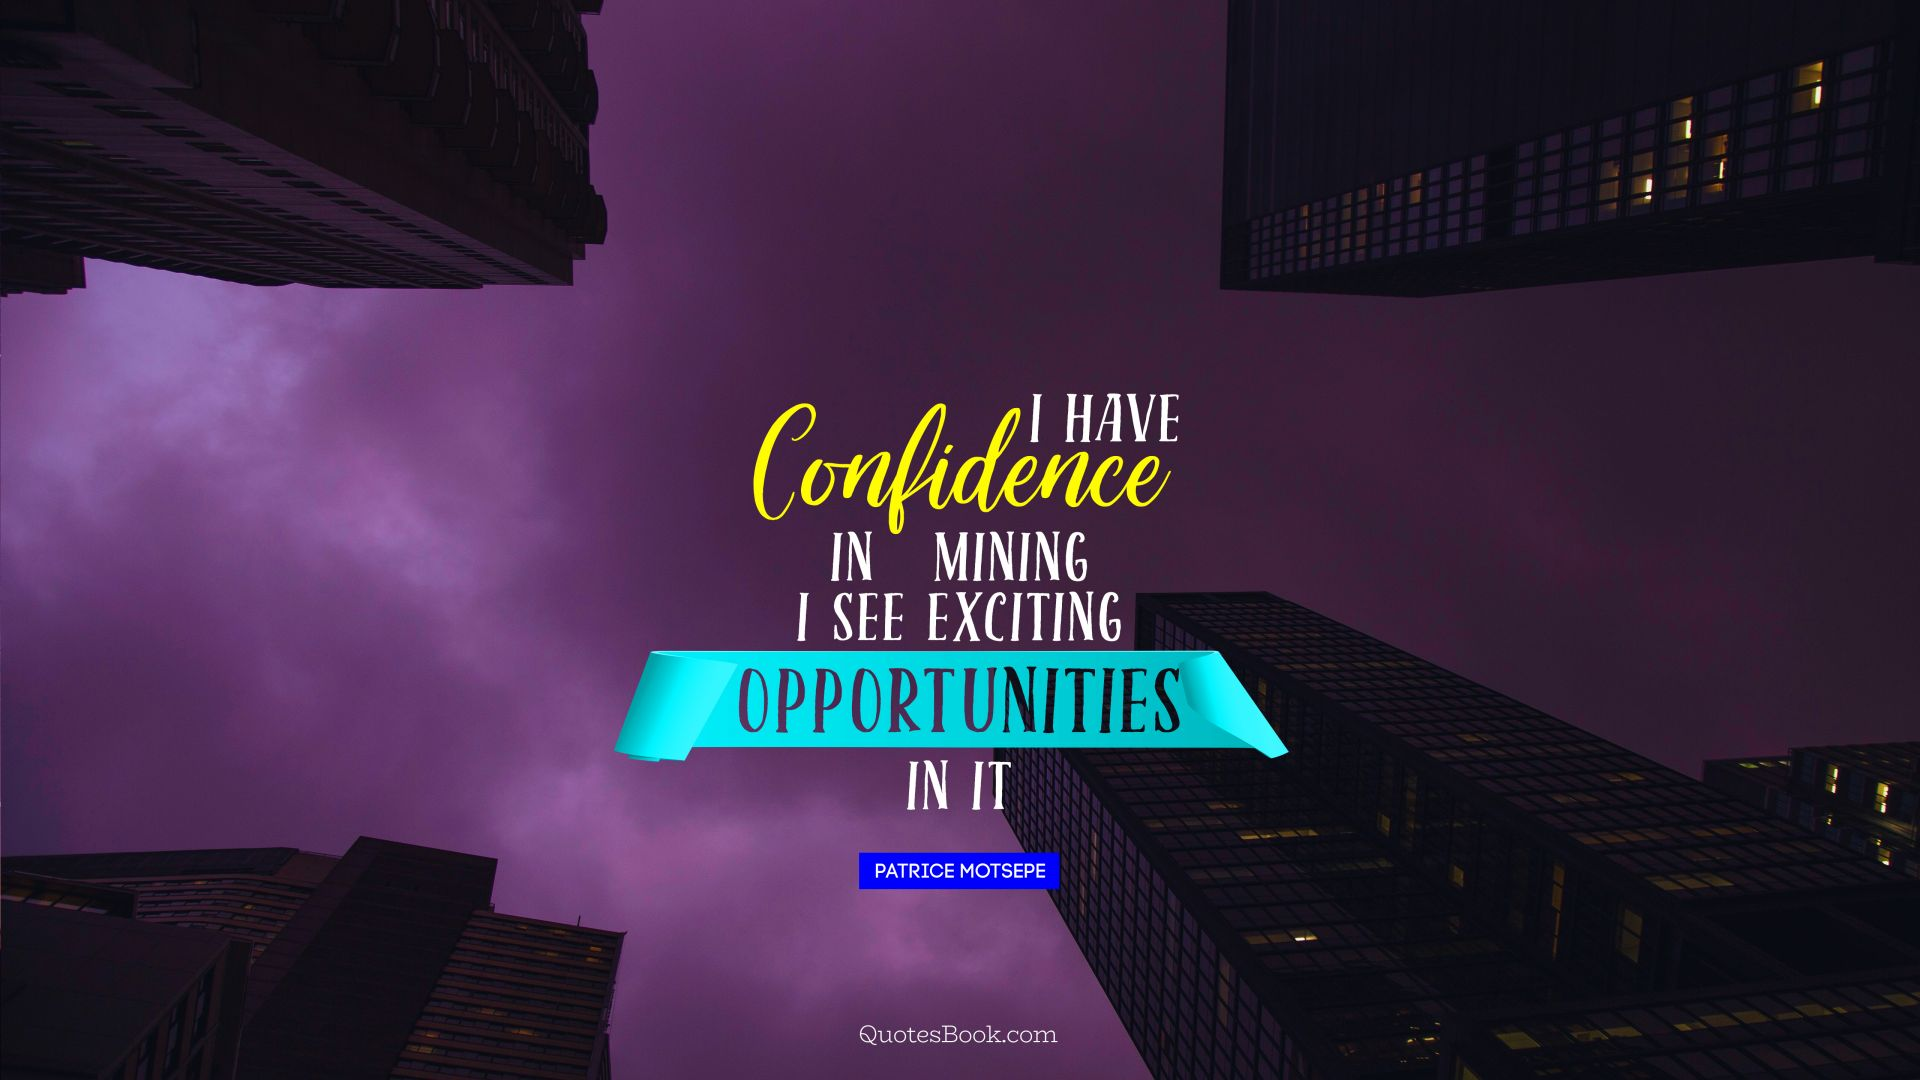 I have confidence in mining. I see exciting opportunities in it. - Quote by Patrice Motsepe